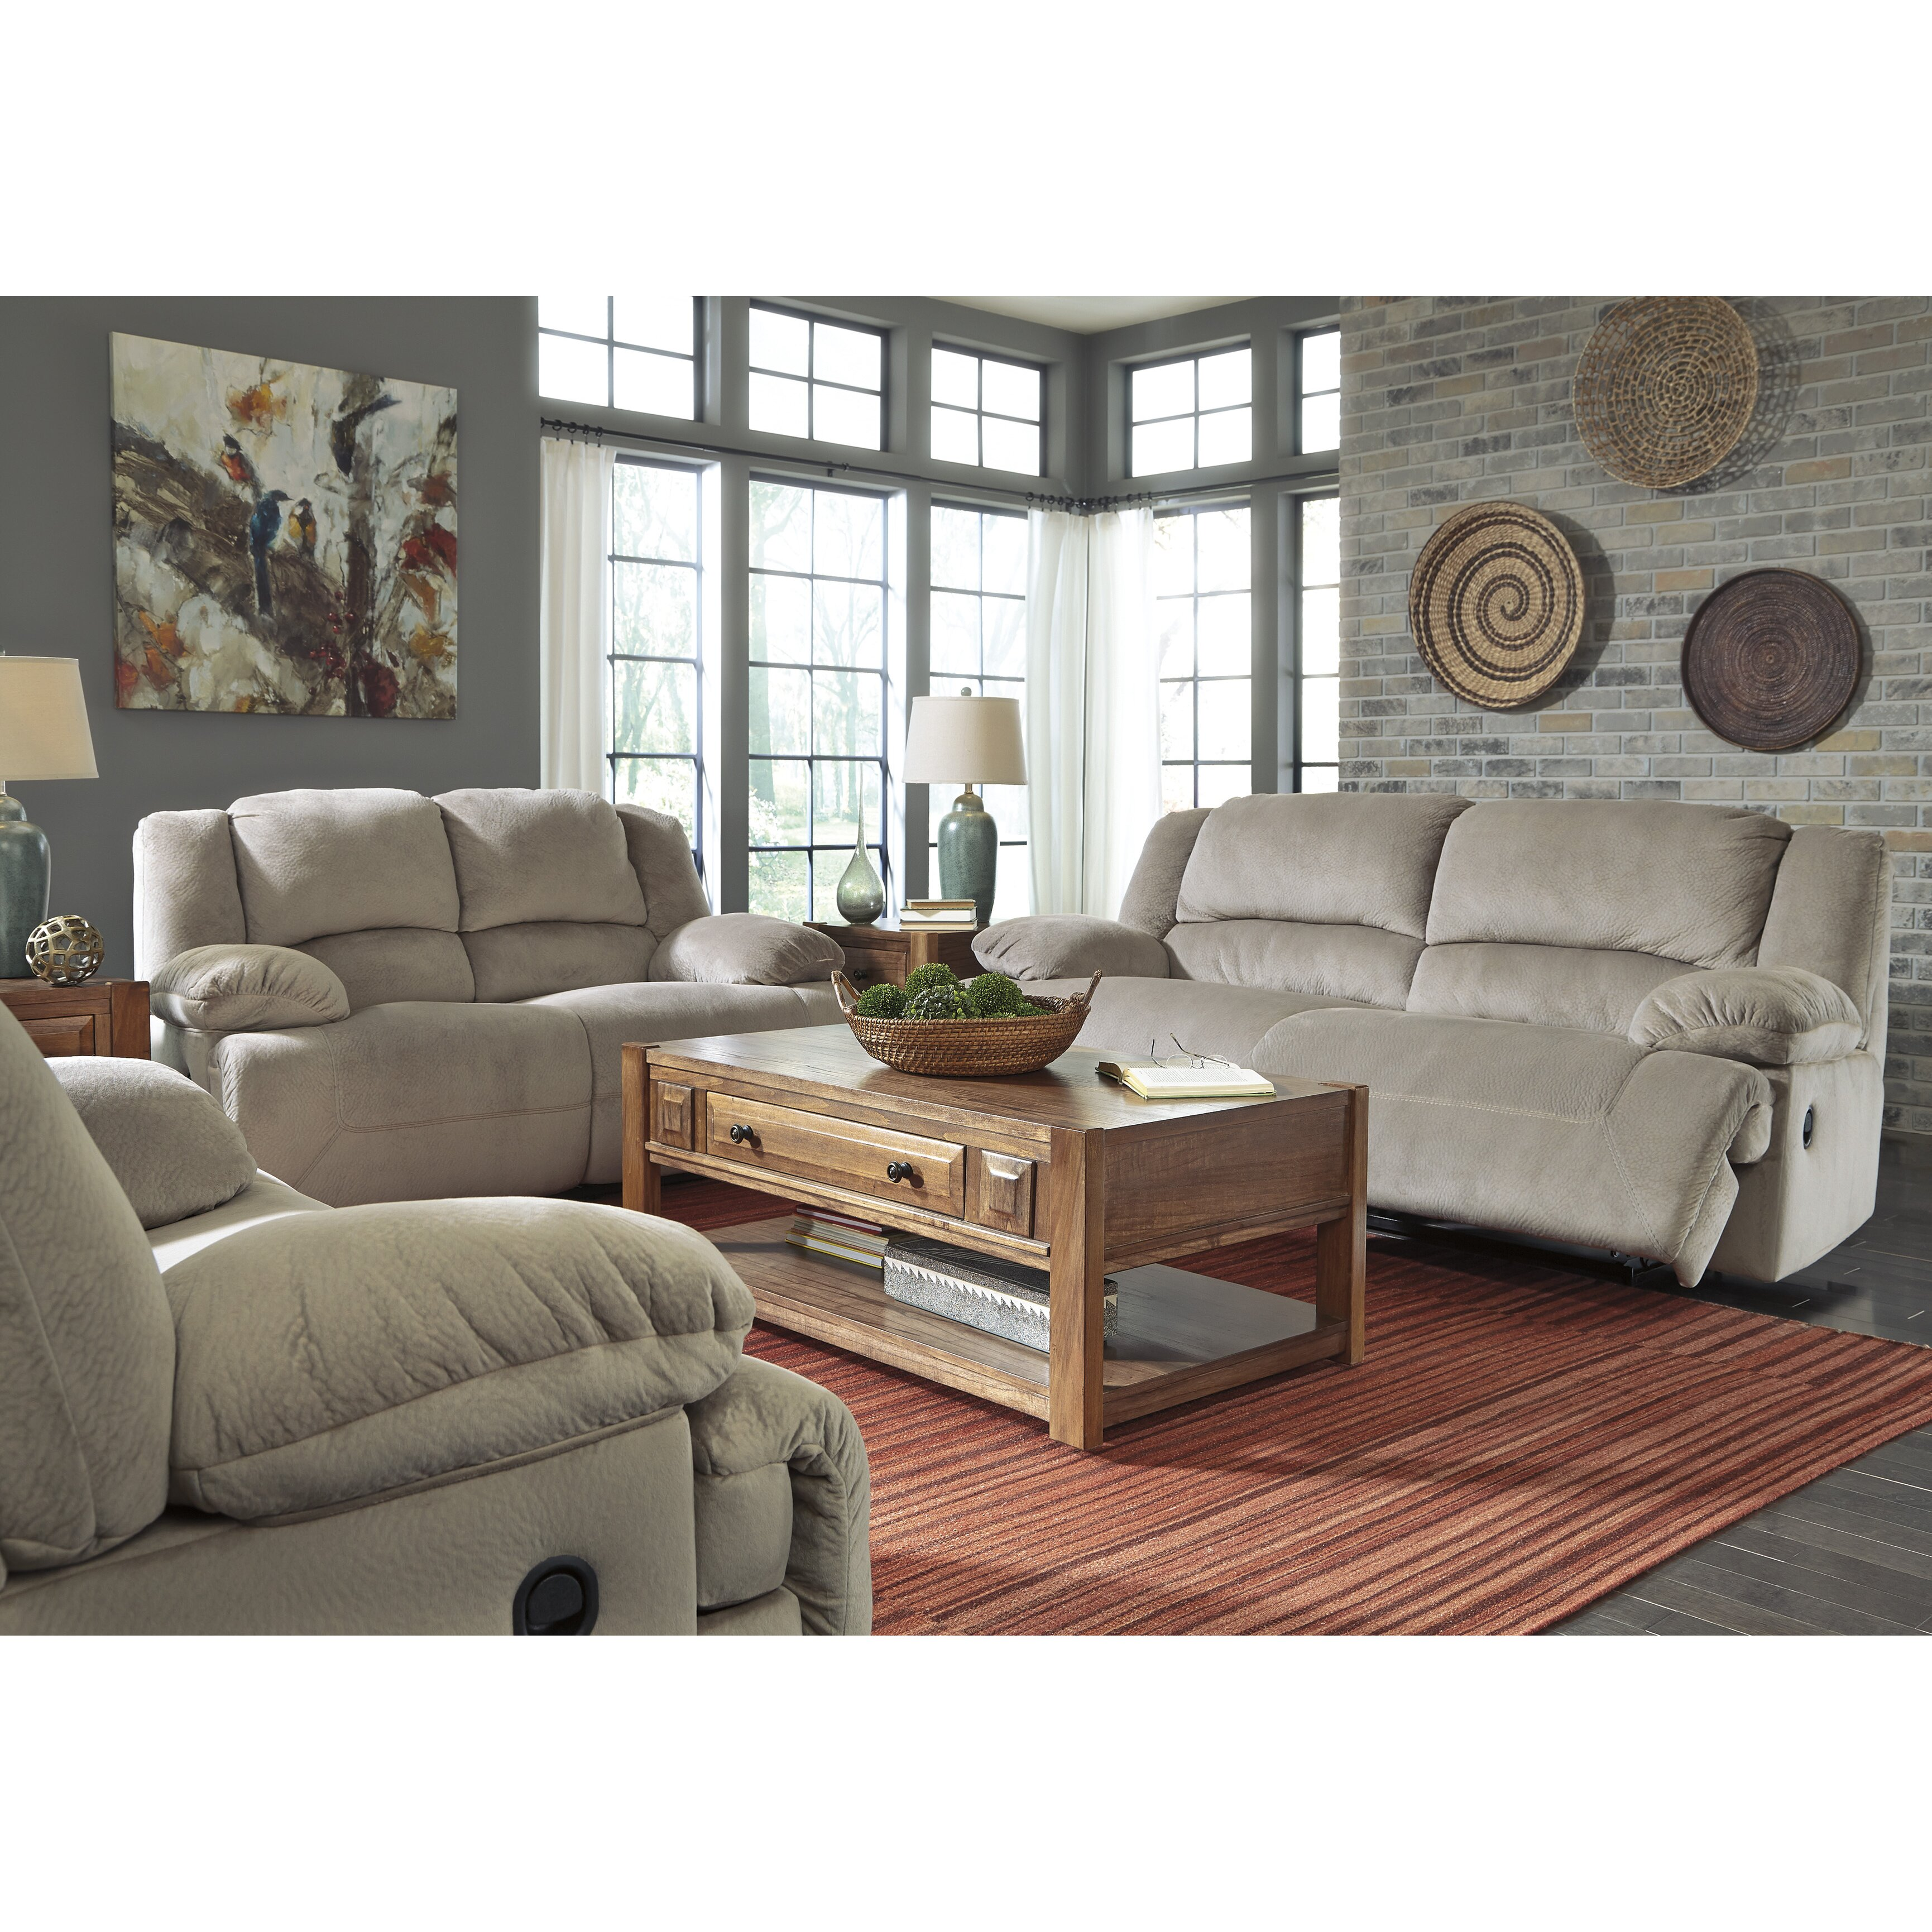 Signature Design By Ashley Tolette 2 Seat Reclining Sofa